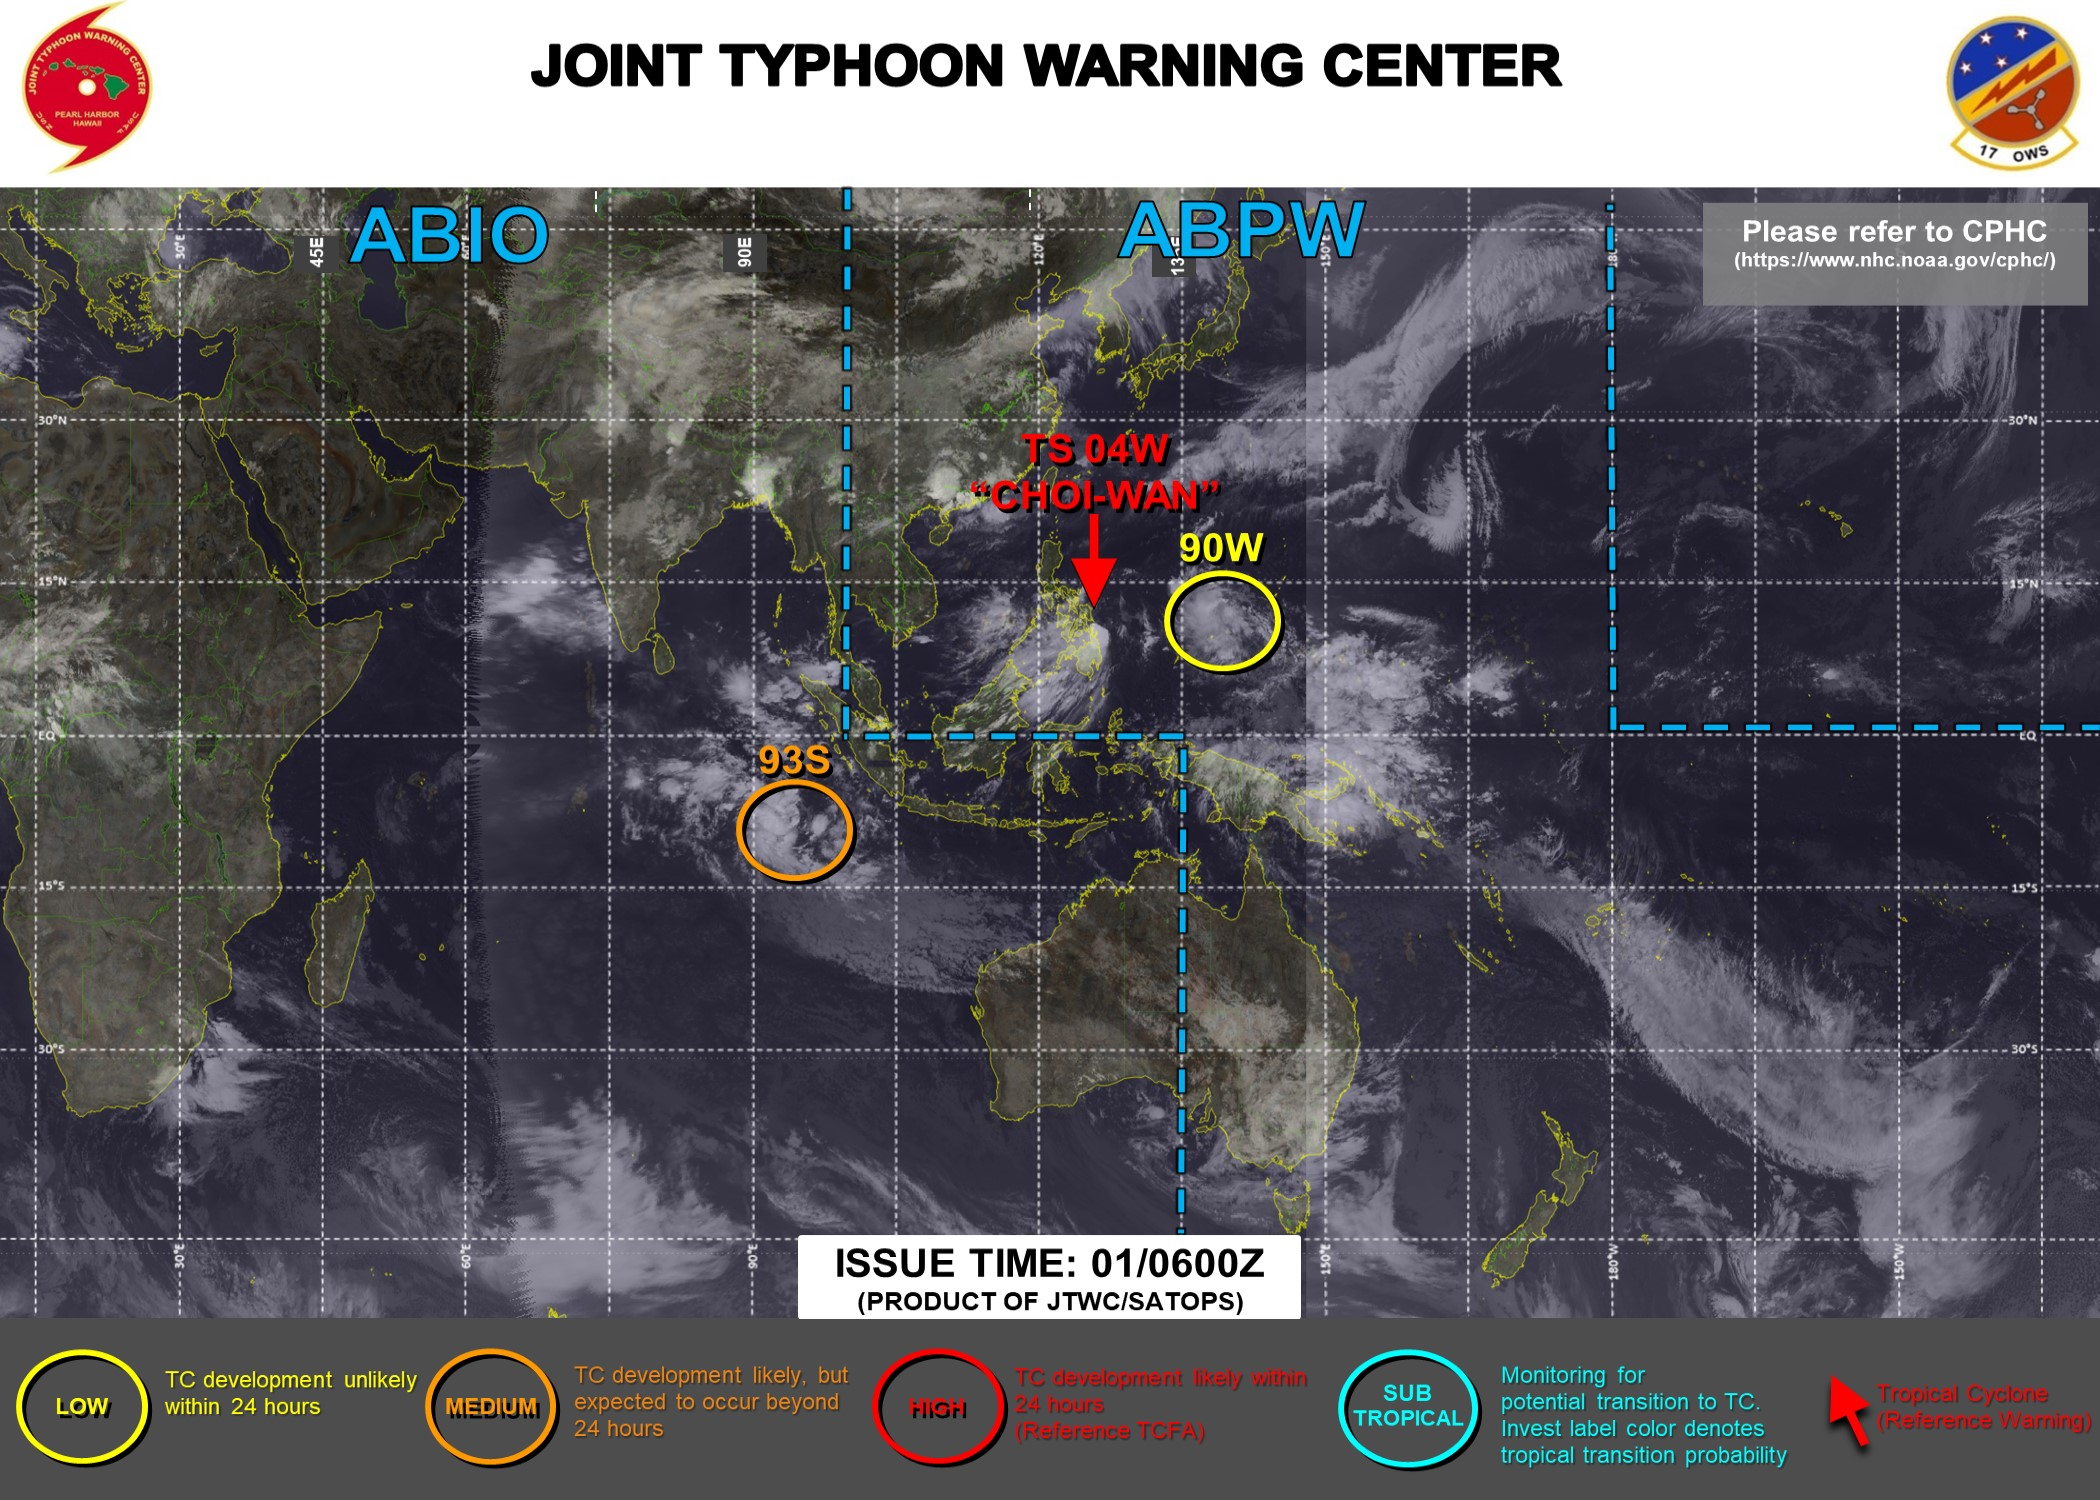 01/06UTC. JTWC HAS BEEN ISSUING 6HOURLY WARNINGS AND 3HOURLY SATELLITE BULLETINS ON TS 04W. INVEST 90W IS ONCE AGAIN ON THE MAP: LOW CHANCES OF DEVELOPING 25KNOT WINDS NEAR ITS CENTER OVER 24HOURS.INVEST 93S IS UP-GRADED TO MEDIUM: MODERATE CHANCES OF DEVELOPING 35KNOT WINDS NEAR ITS CENTER OVER 24HOURS. 3HOURLY SATELLITE BULLETINS ARE NOW ISSUED ON 93S.